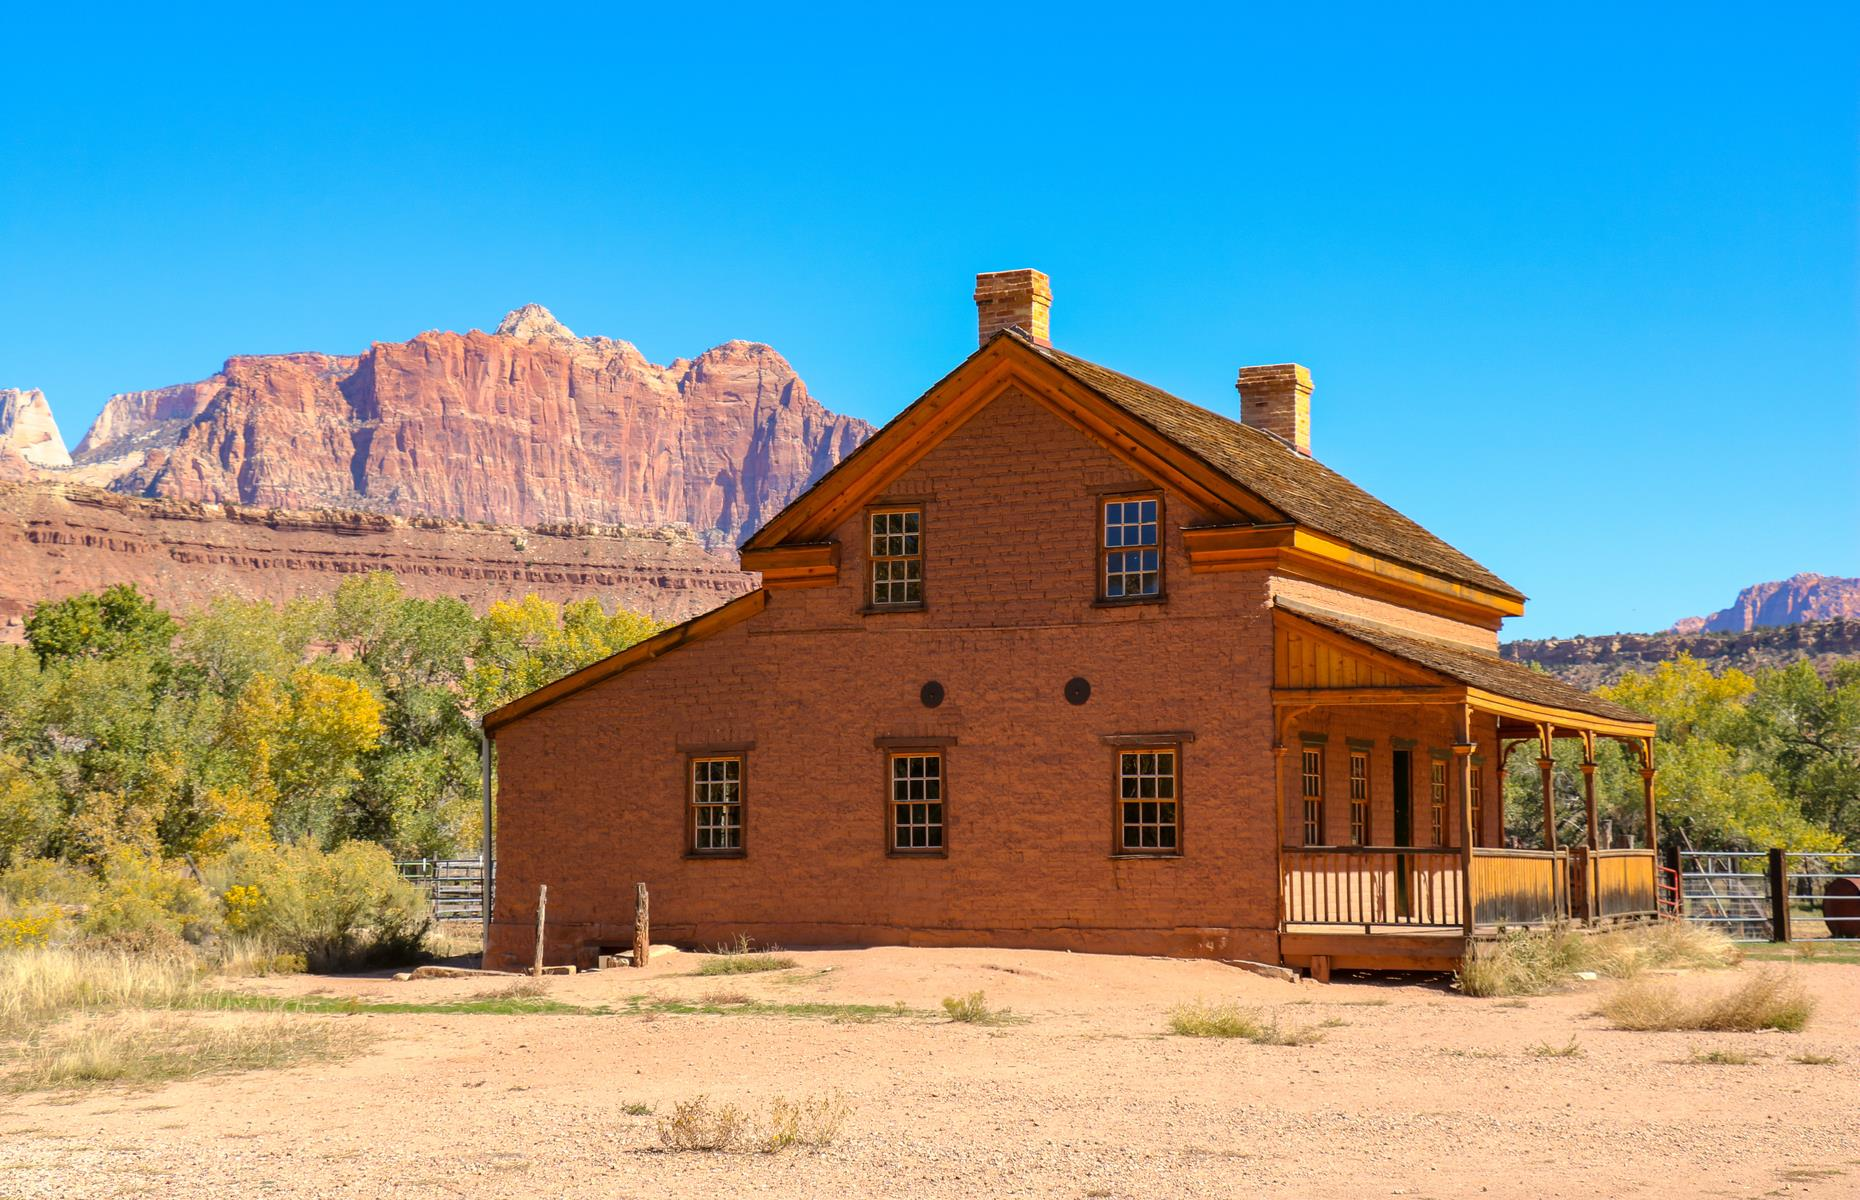 Slide 46 of 52: The rugged red peaks of Zion National Park watch over this ghost town. Once one of a large string of nearby villages, it was established by Mormon settlers from around 1859 – though the site we see today was built up in 1862 after a flood devastated the original town. It was inhabited until the early 1900s, when most residents moved west in search of a new life. The fascinating deserted homes, the atmospheric cemetery and the sheer natural beauty typically draw visitors to the site.